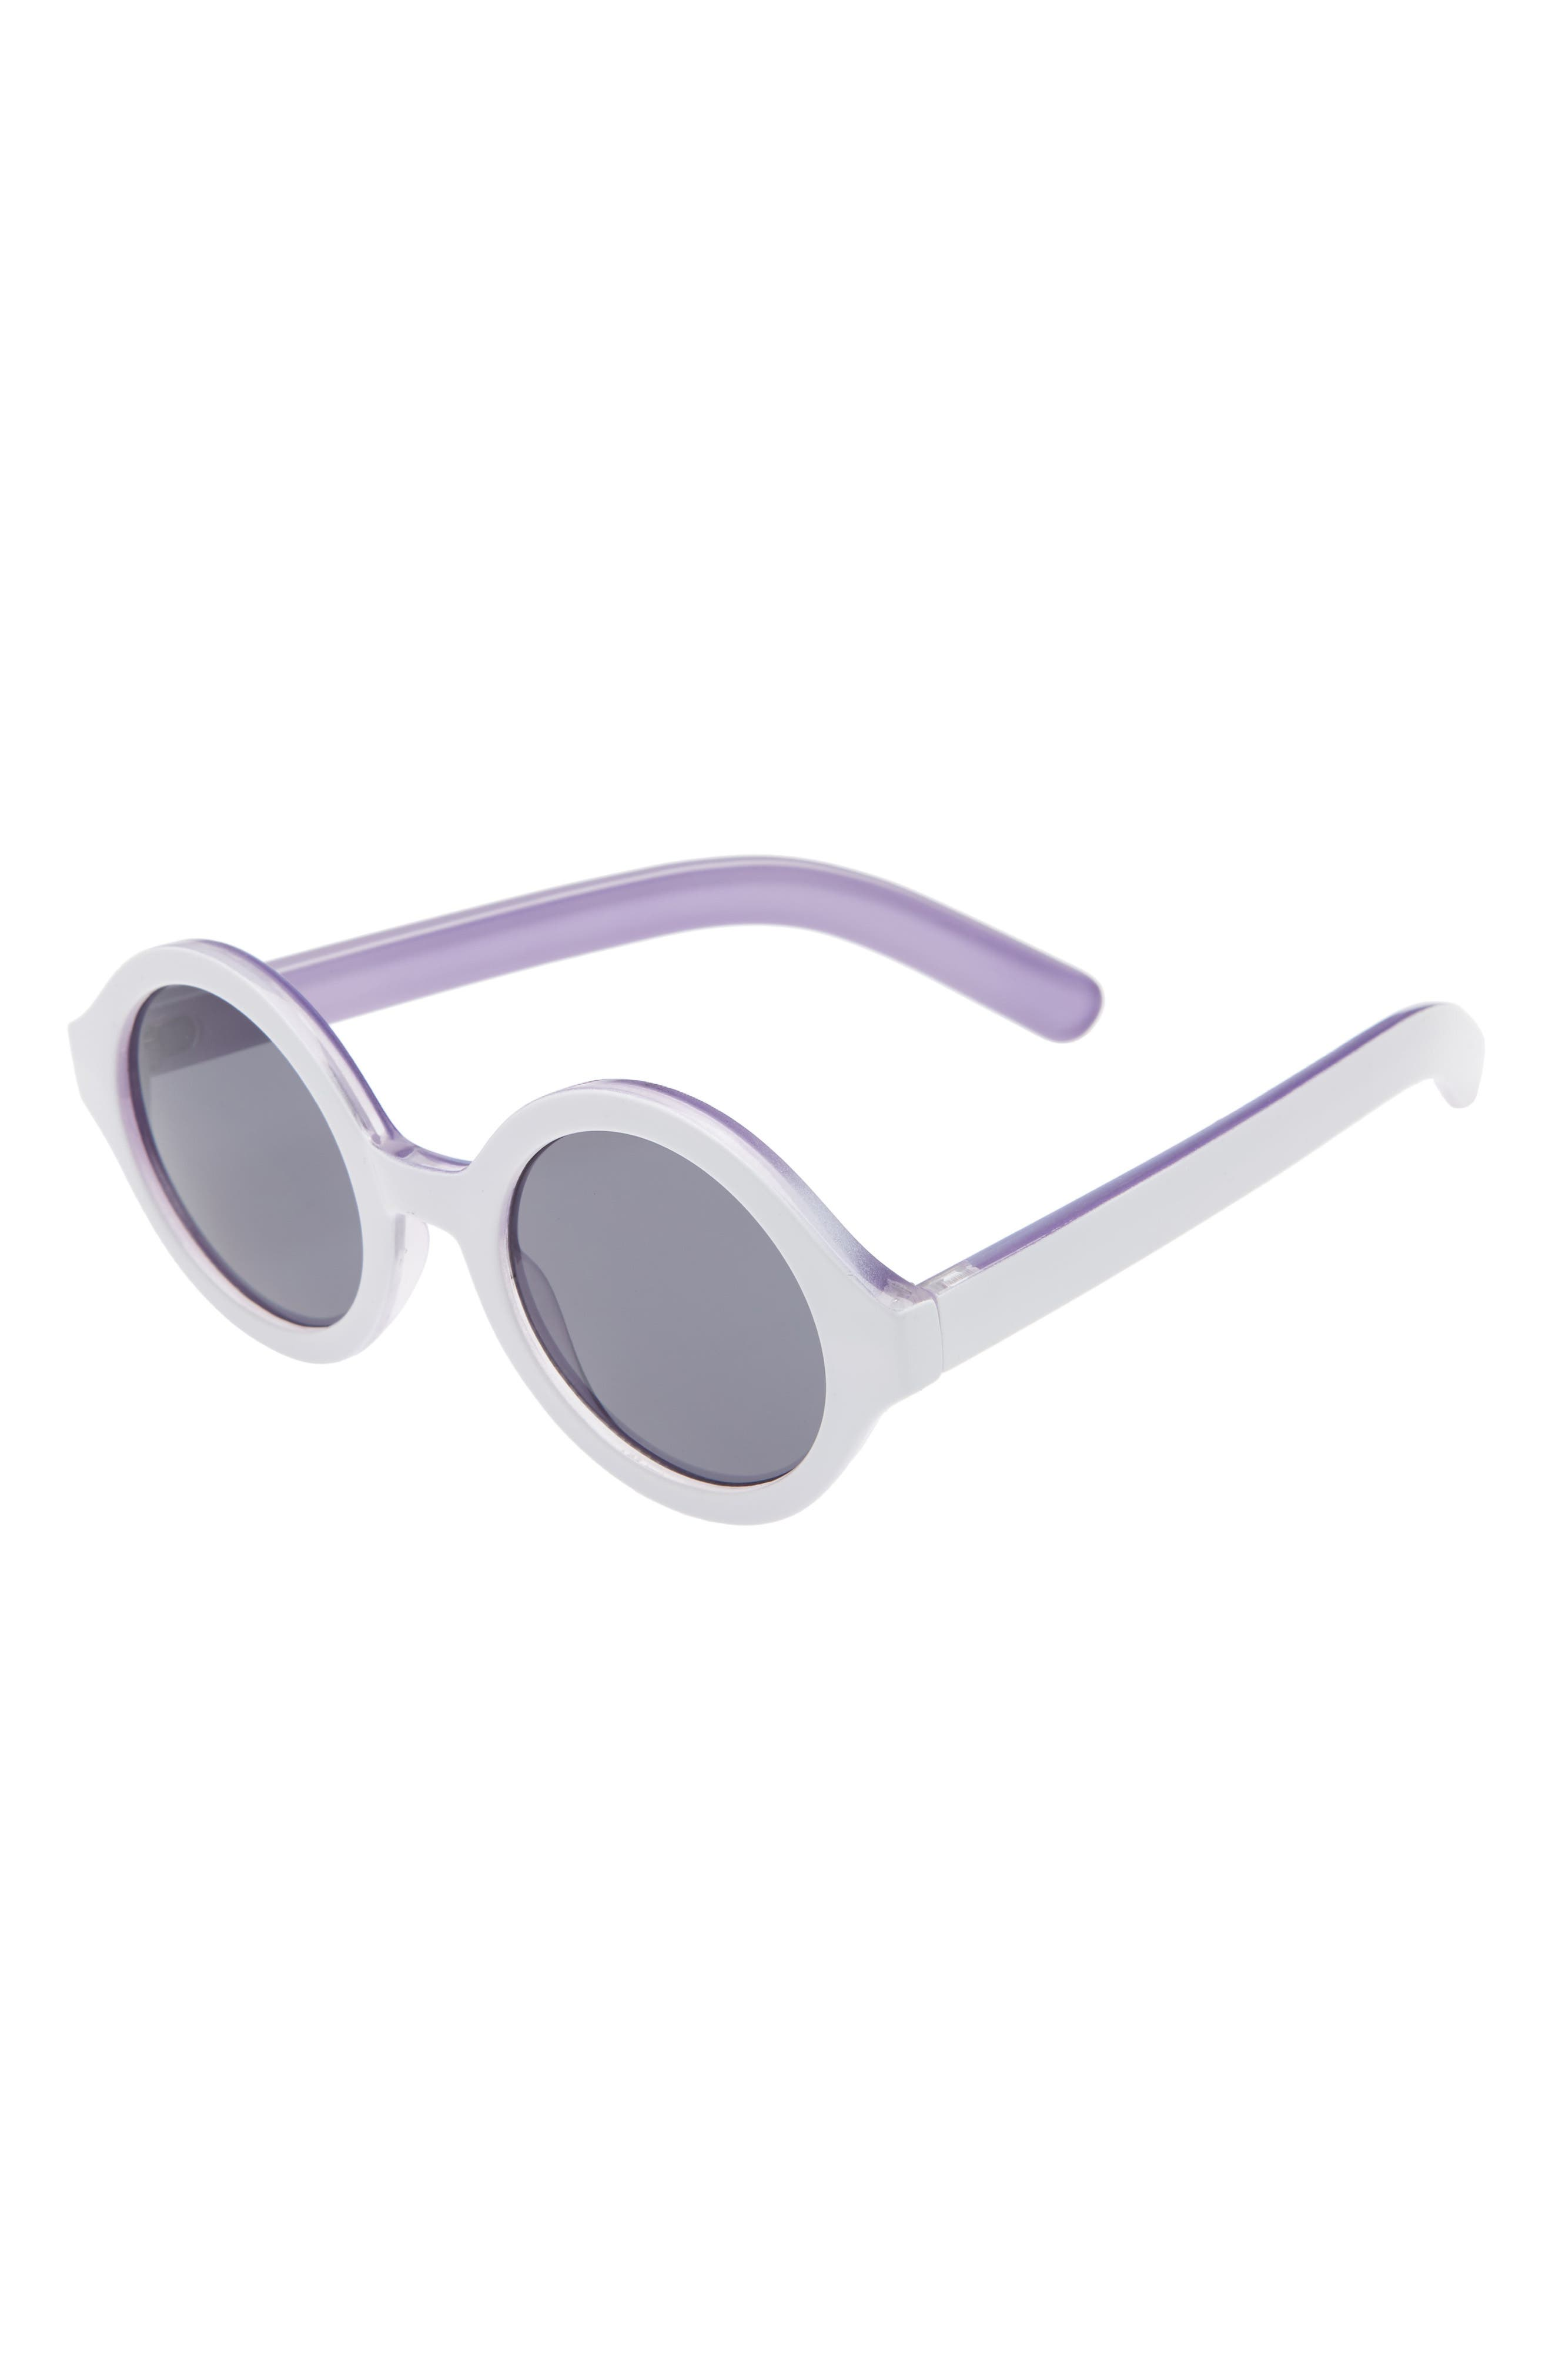 Round Sunglasses,                             Main thumbnail 1, color,